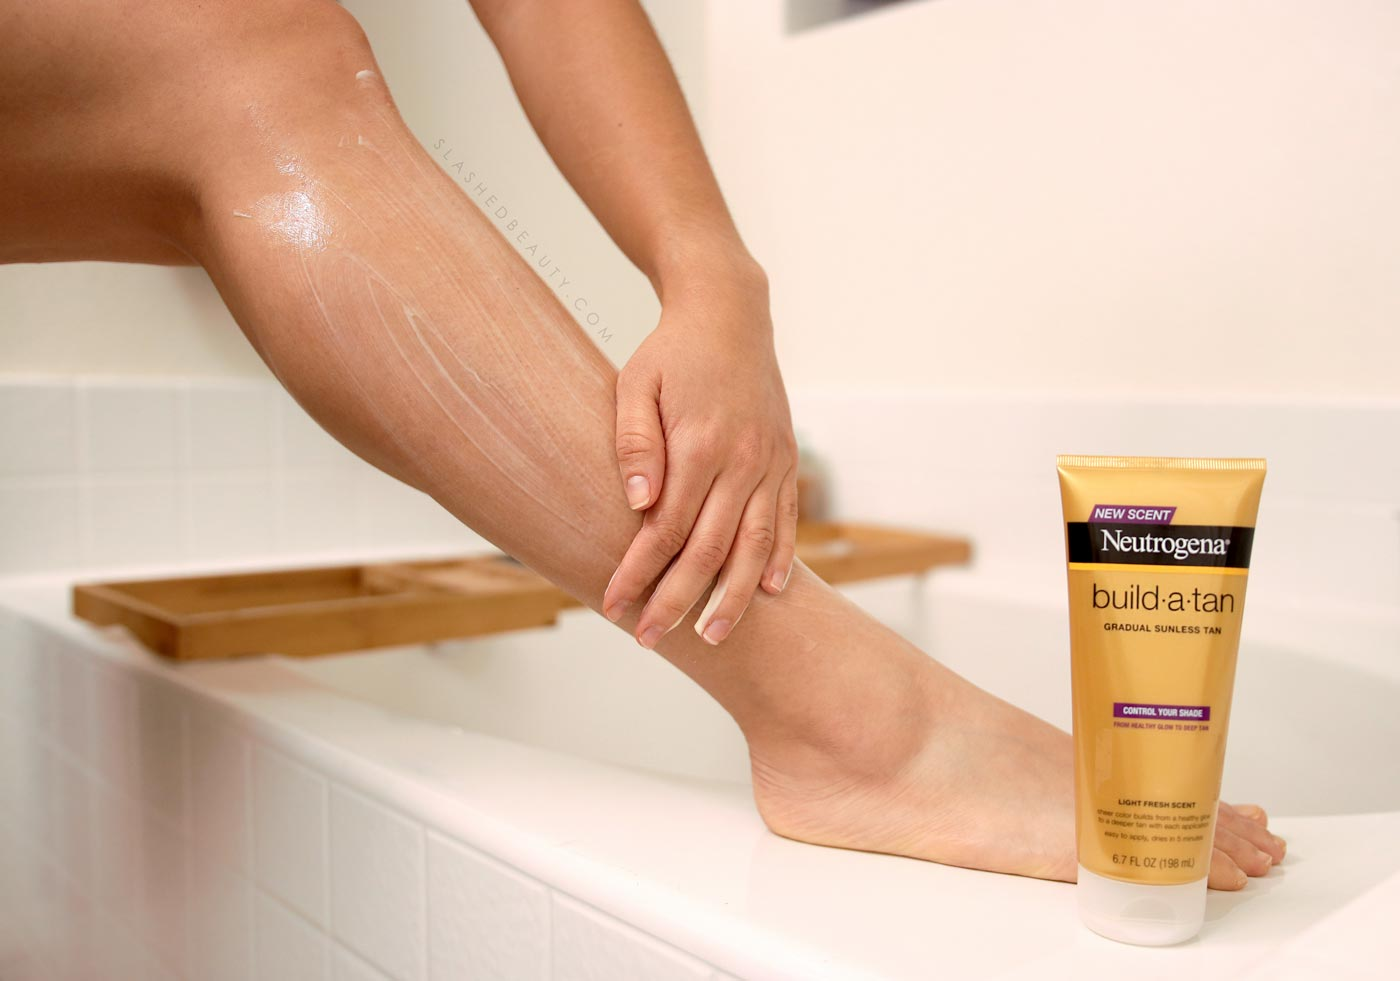 Applying Neutrogena Build-A-Tan lotion to the legs | Best Drugstore Self Tanner | Slashed Beauty